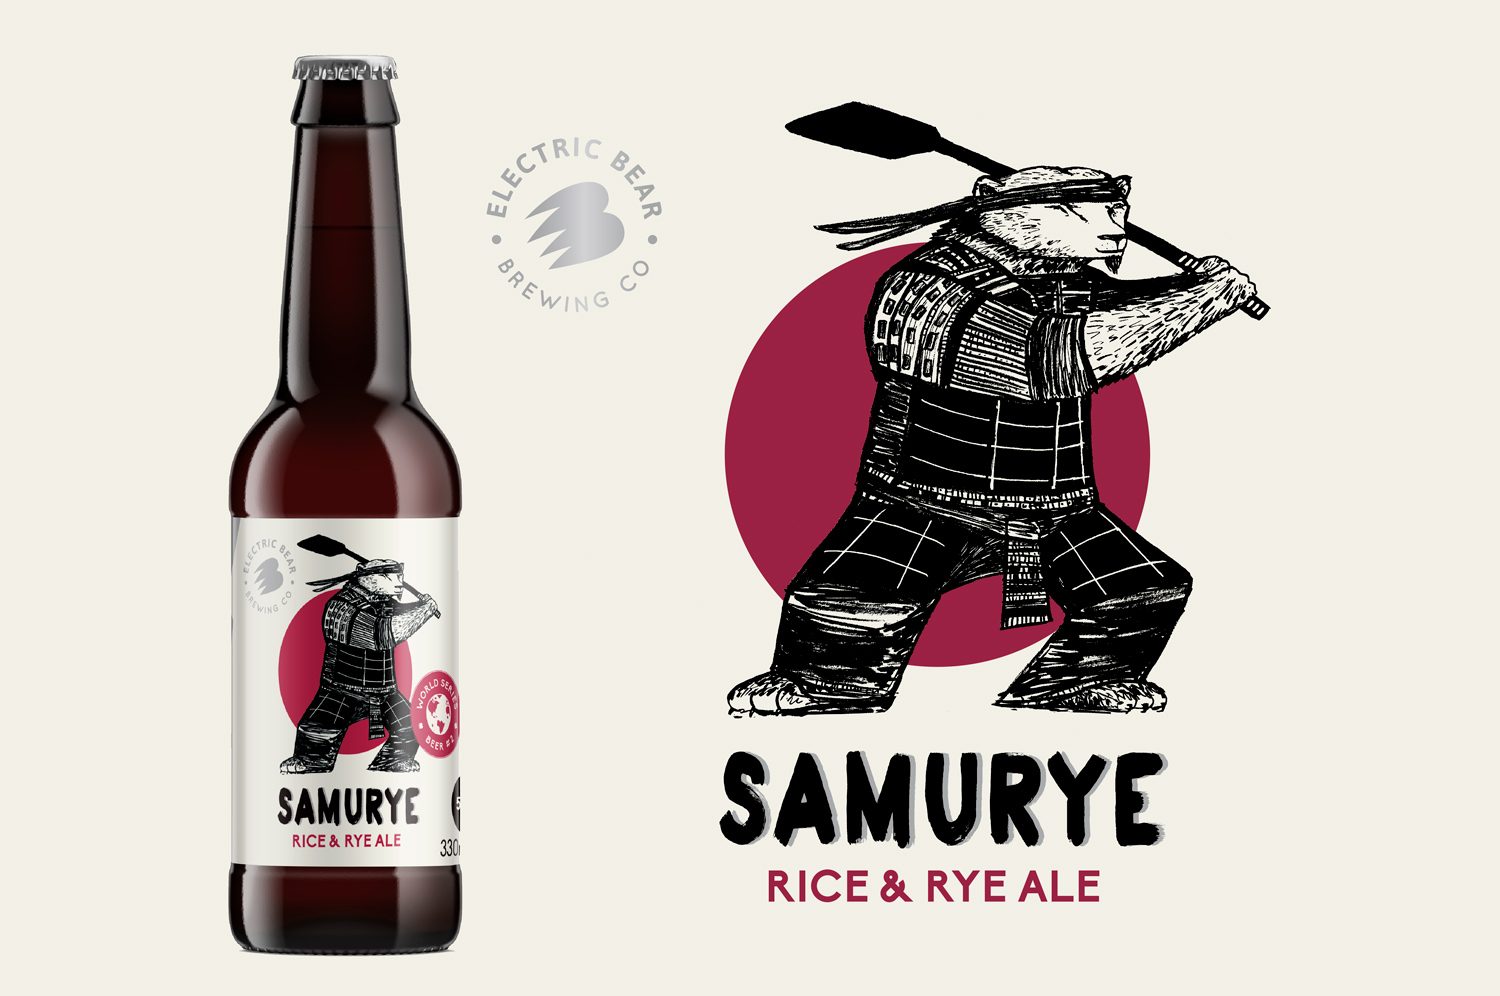 Samurye bottle design by Electric Bear Brewing